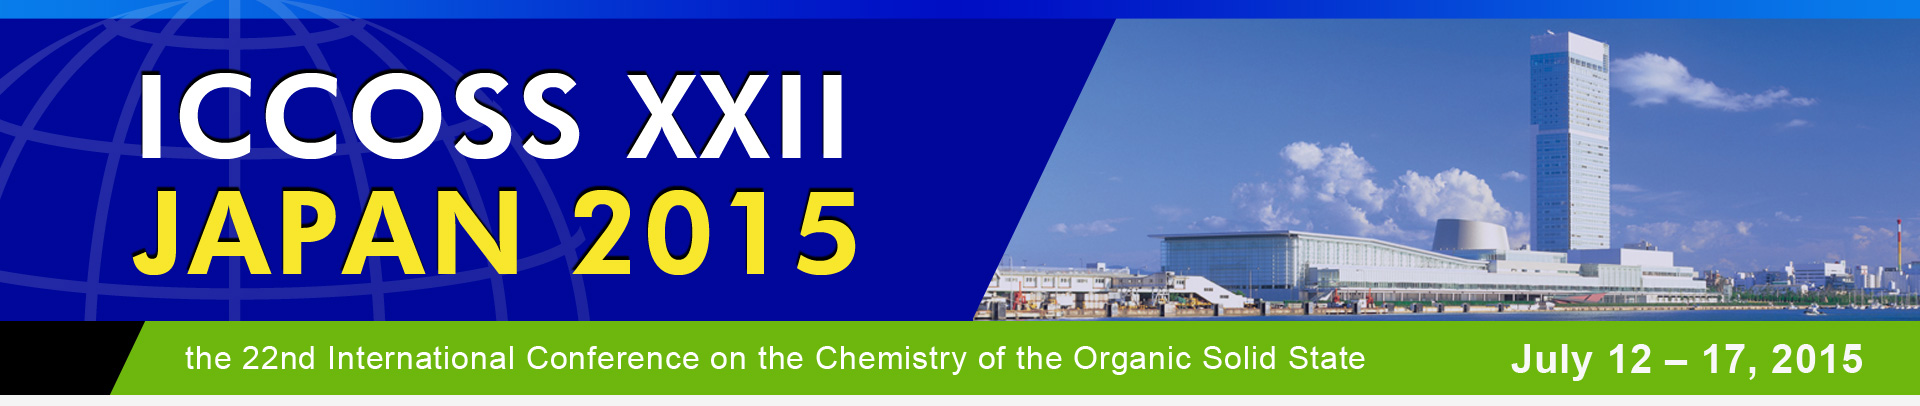 ICCOSS XXII JAPAN 2015 / the 22nd International Conference on the Chemistry of the Organic Solid State